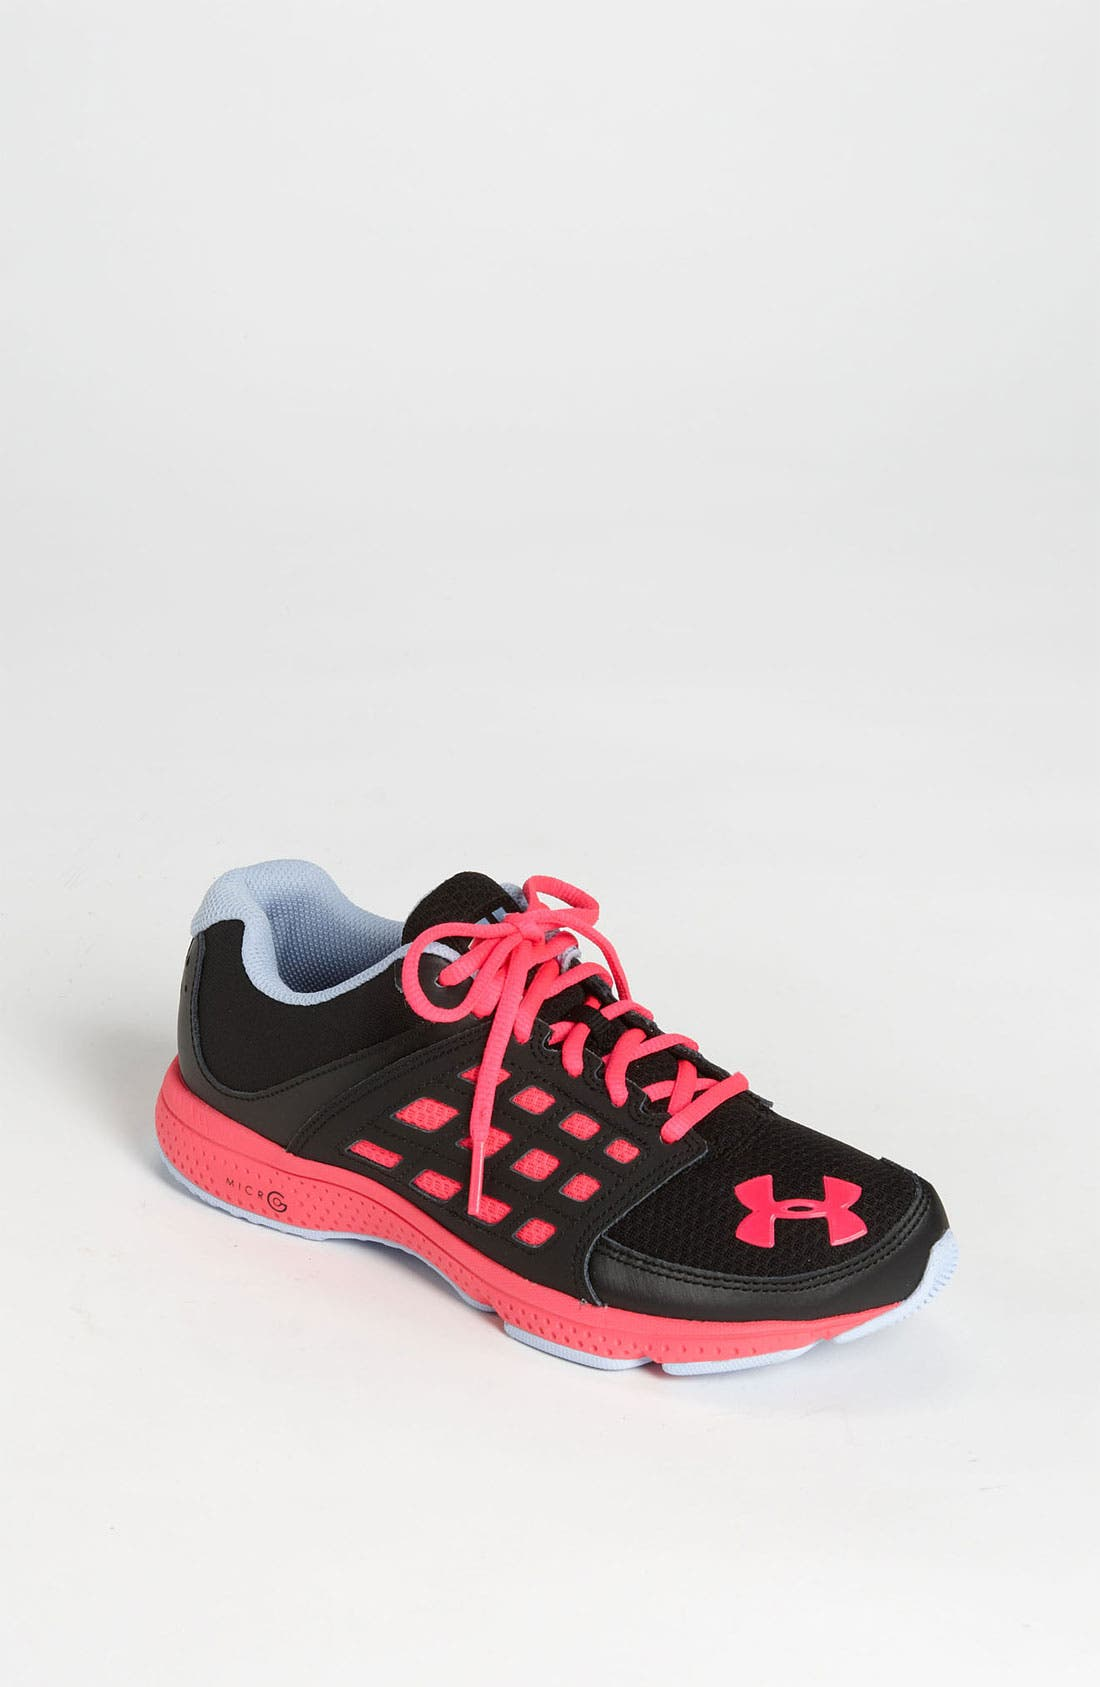 Main Image - Under Armour 'Micro G® Connect' Sneaker (Toddler, Little Kid & Big Kid)